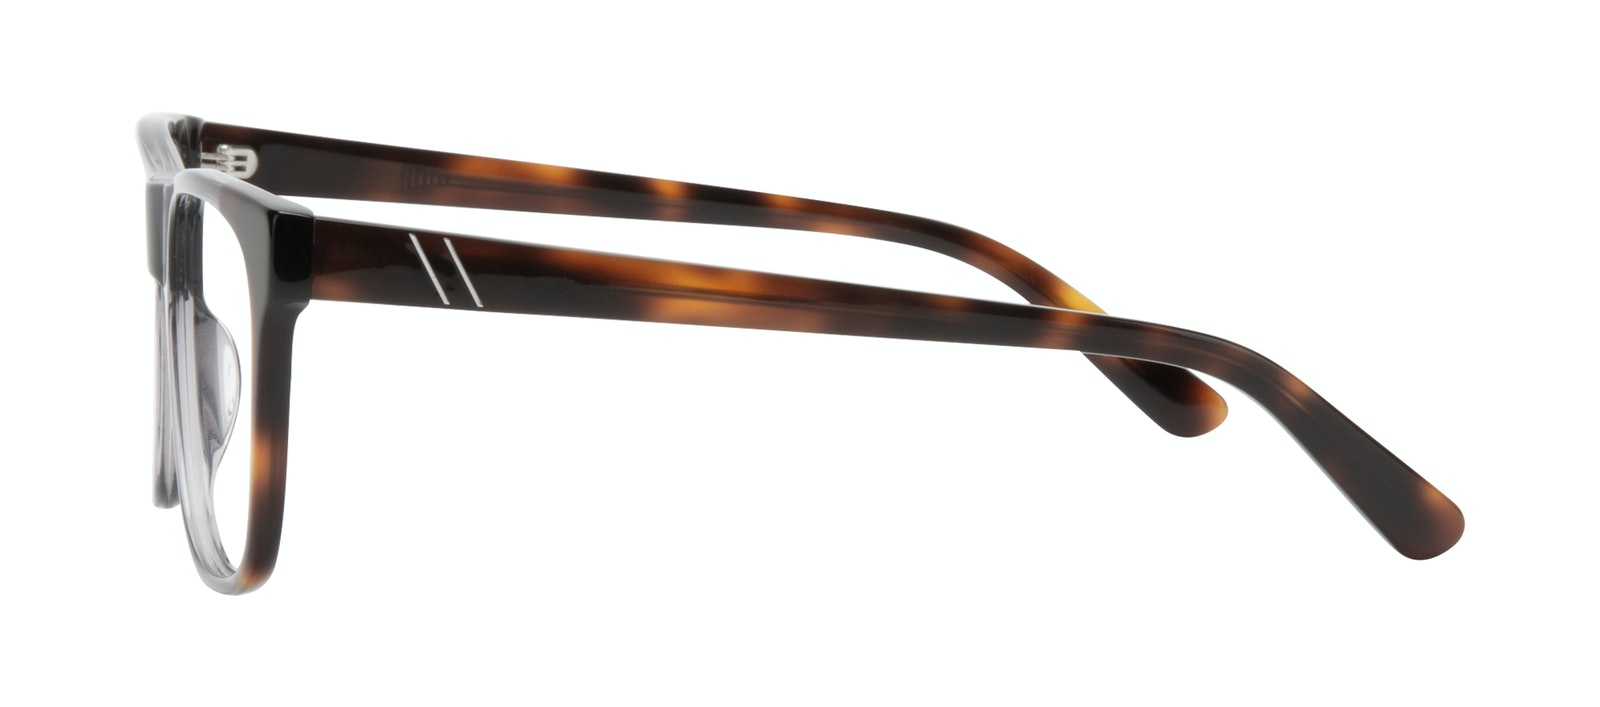 Affordable Fashion Glasses Square Eyeglasses Men Make Smokey Tort Side